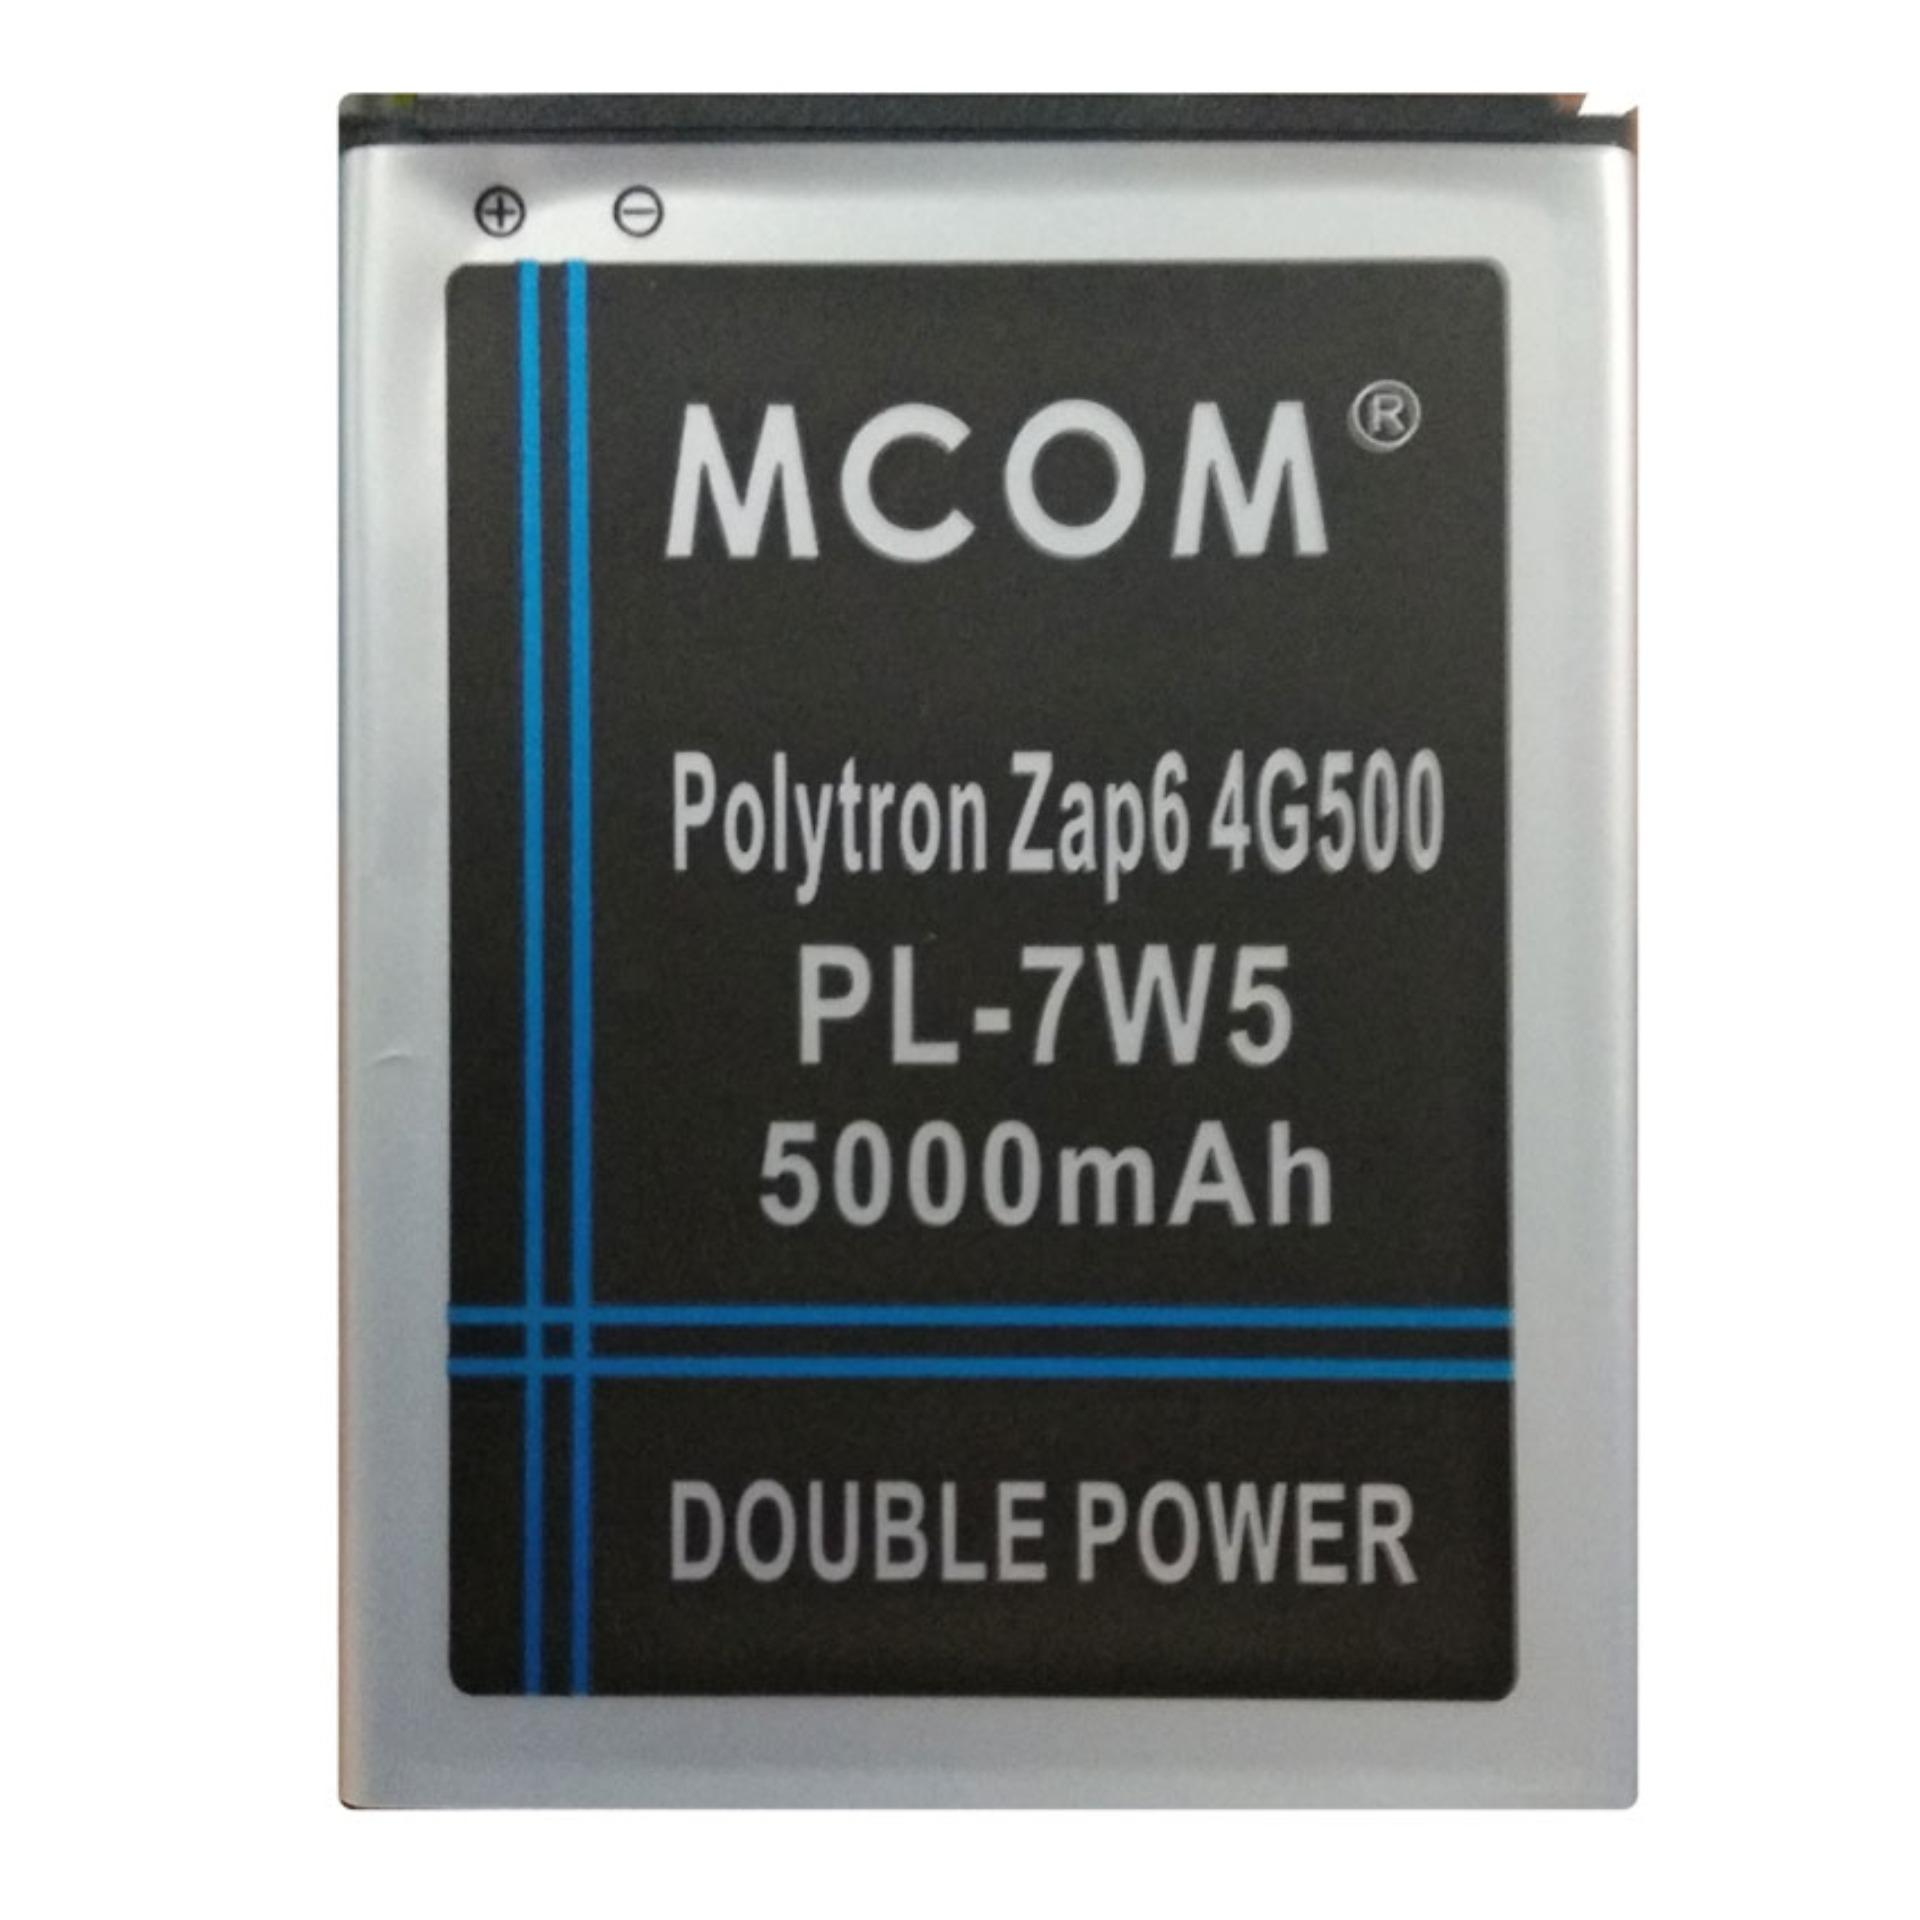 M-Com Baterai Double Power Battery for Polytron Zap 6 4G 500 / PL-7W5  - 5000 mAh